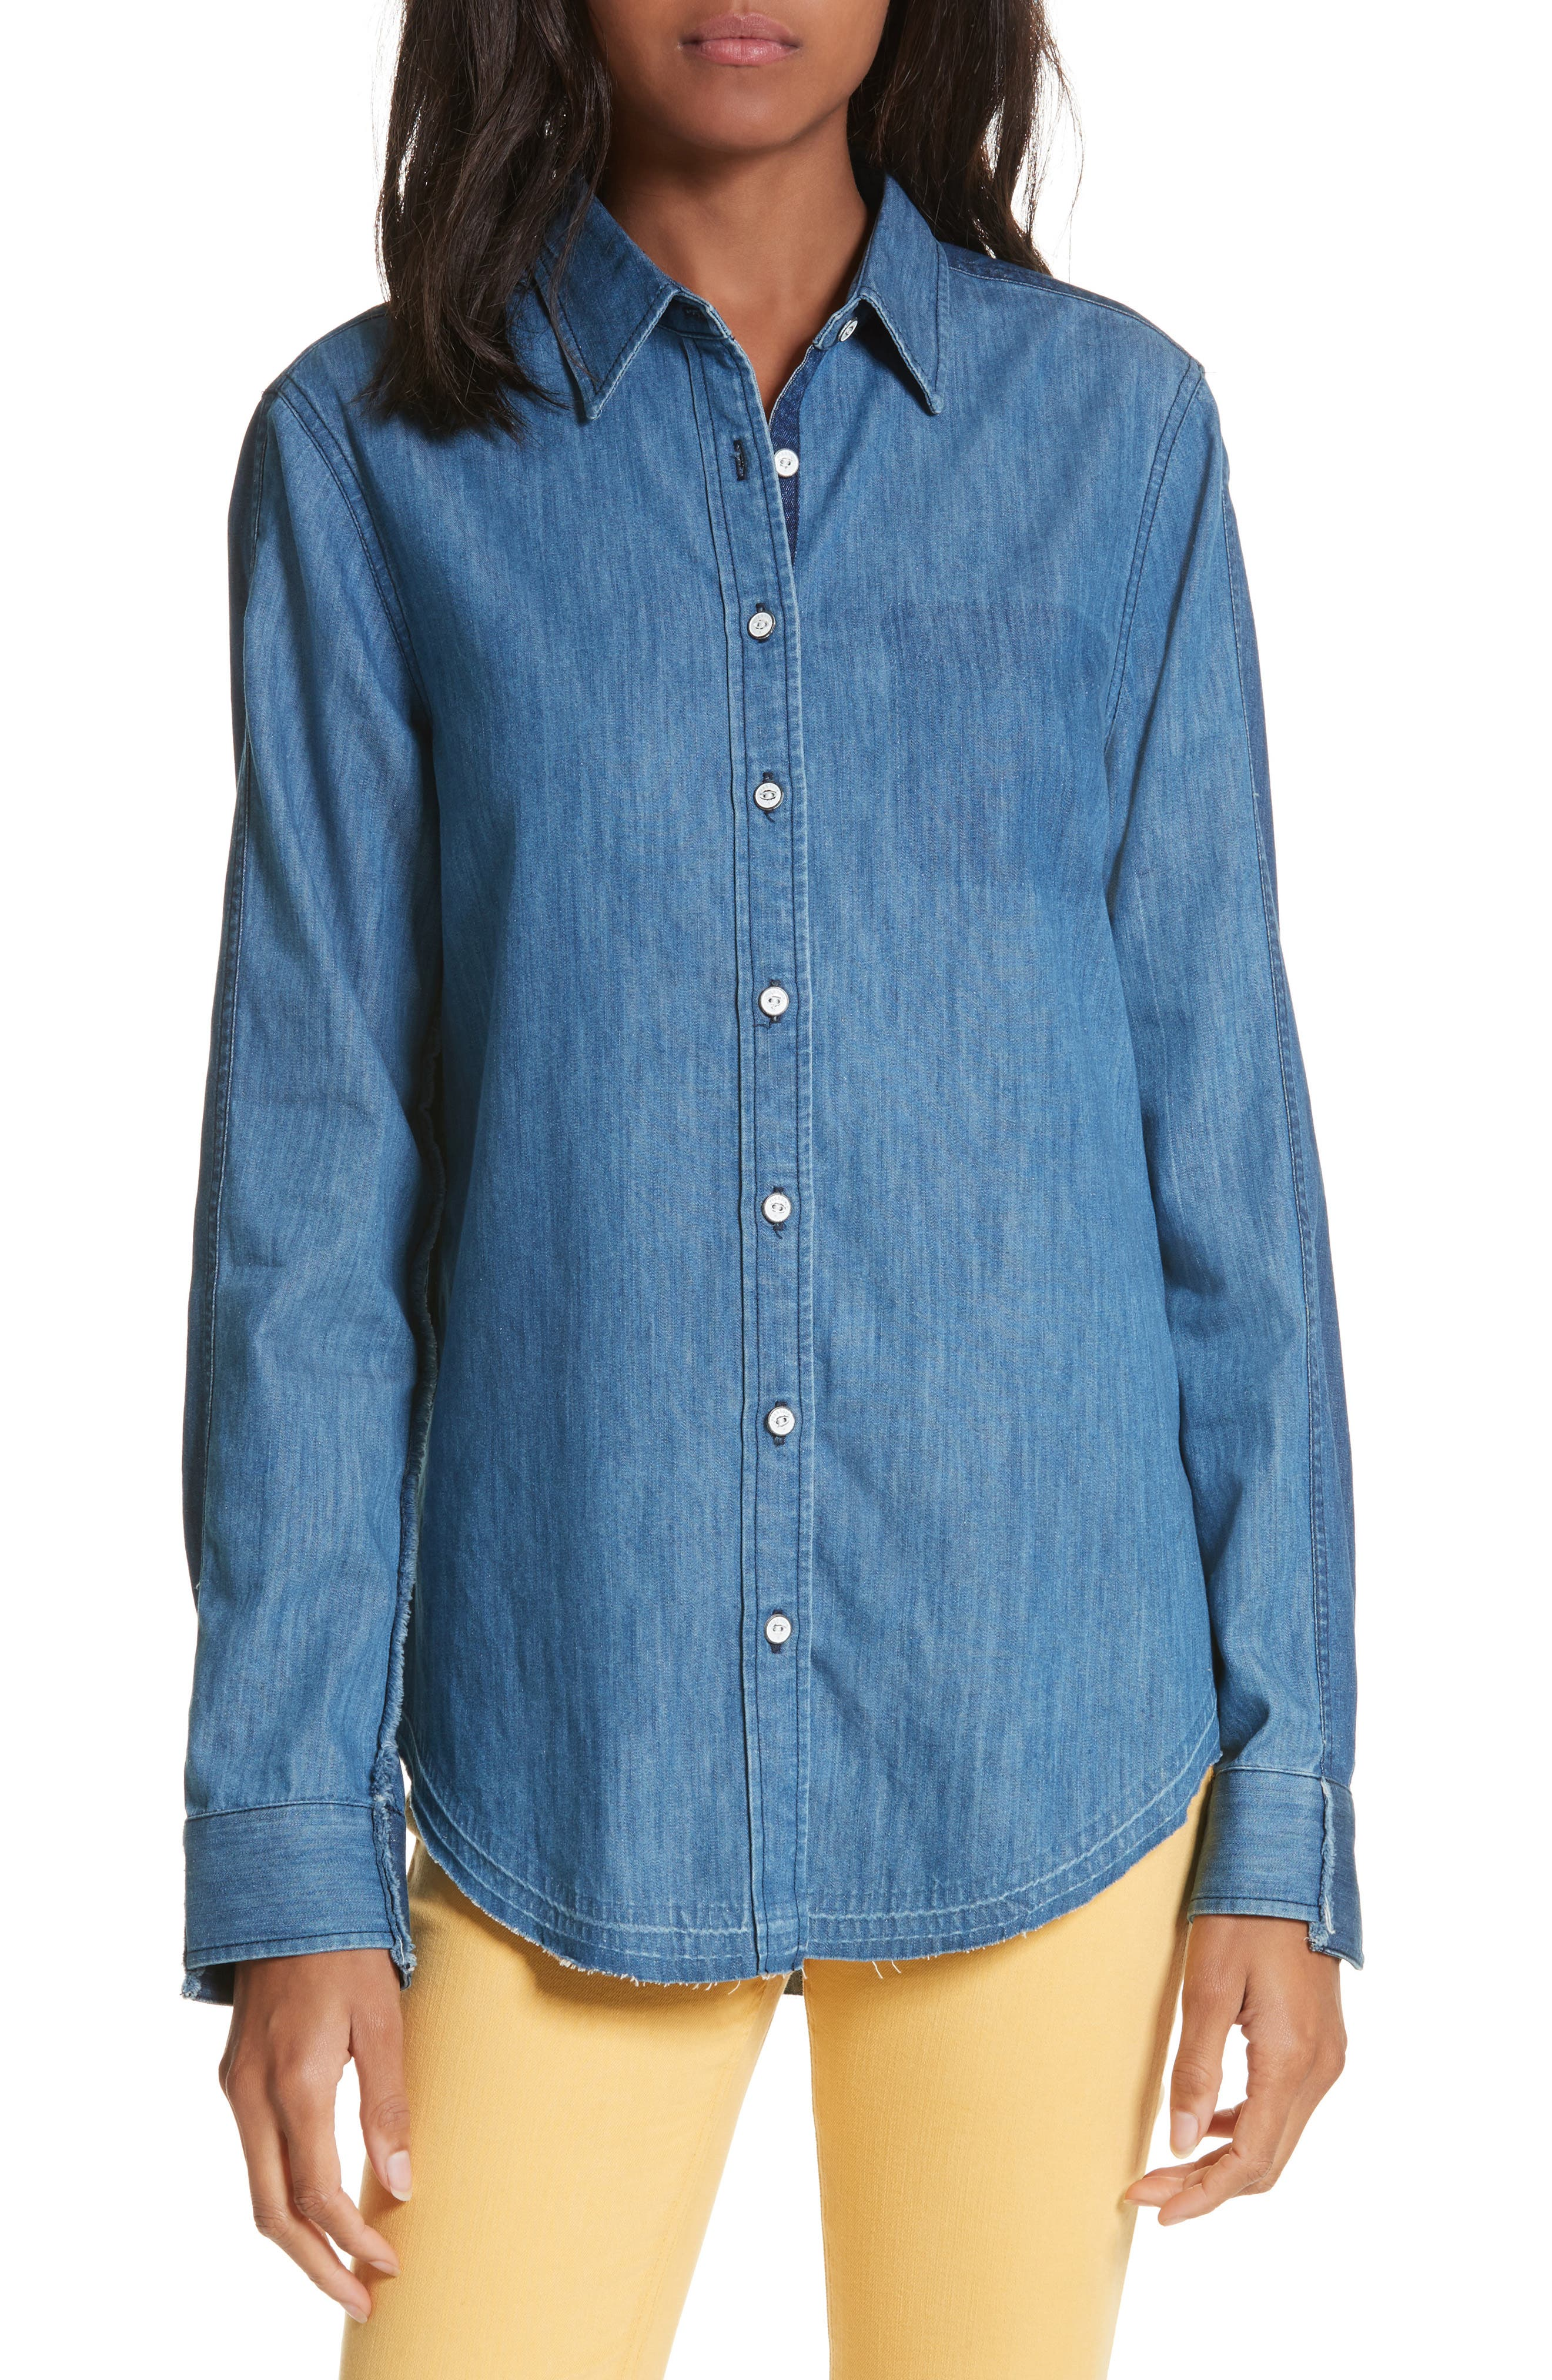 Alternate Image 1 Selected - rag & bone/JEAN Destroyed Classic Denim Shirt